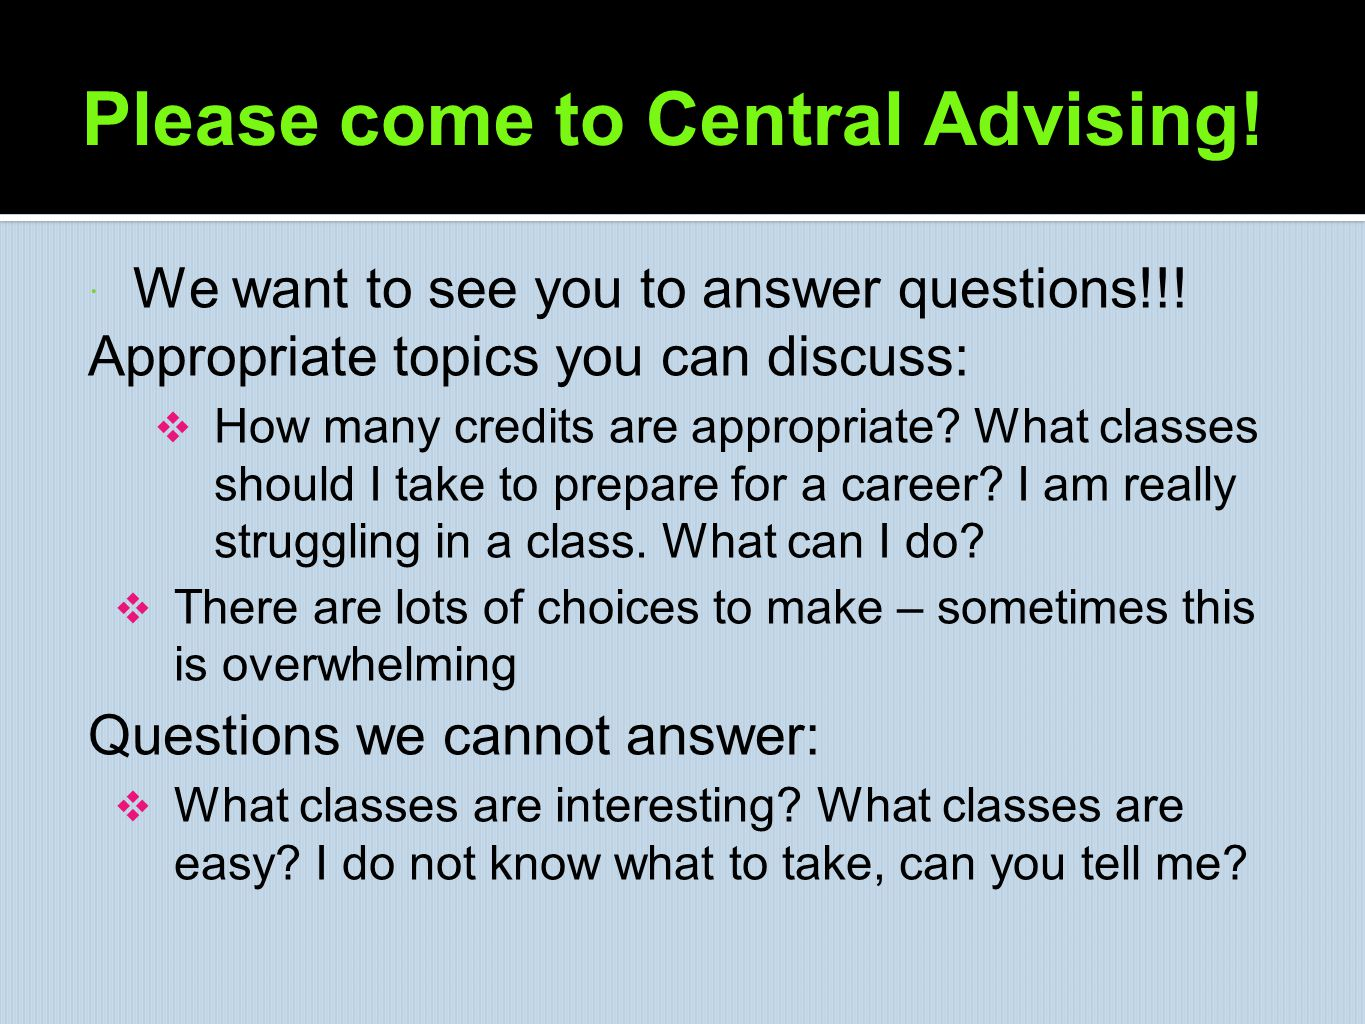 Please come to Central Advising!